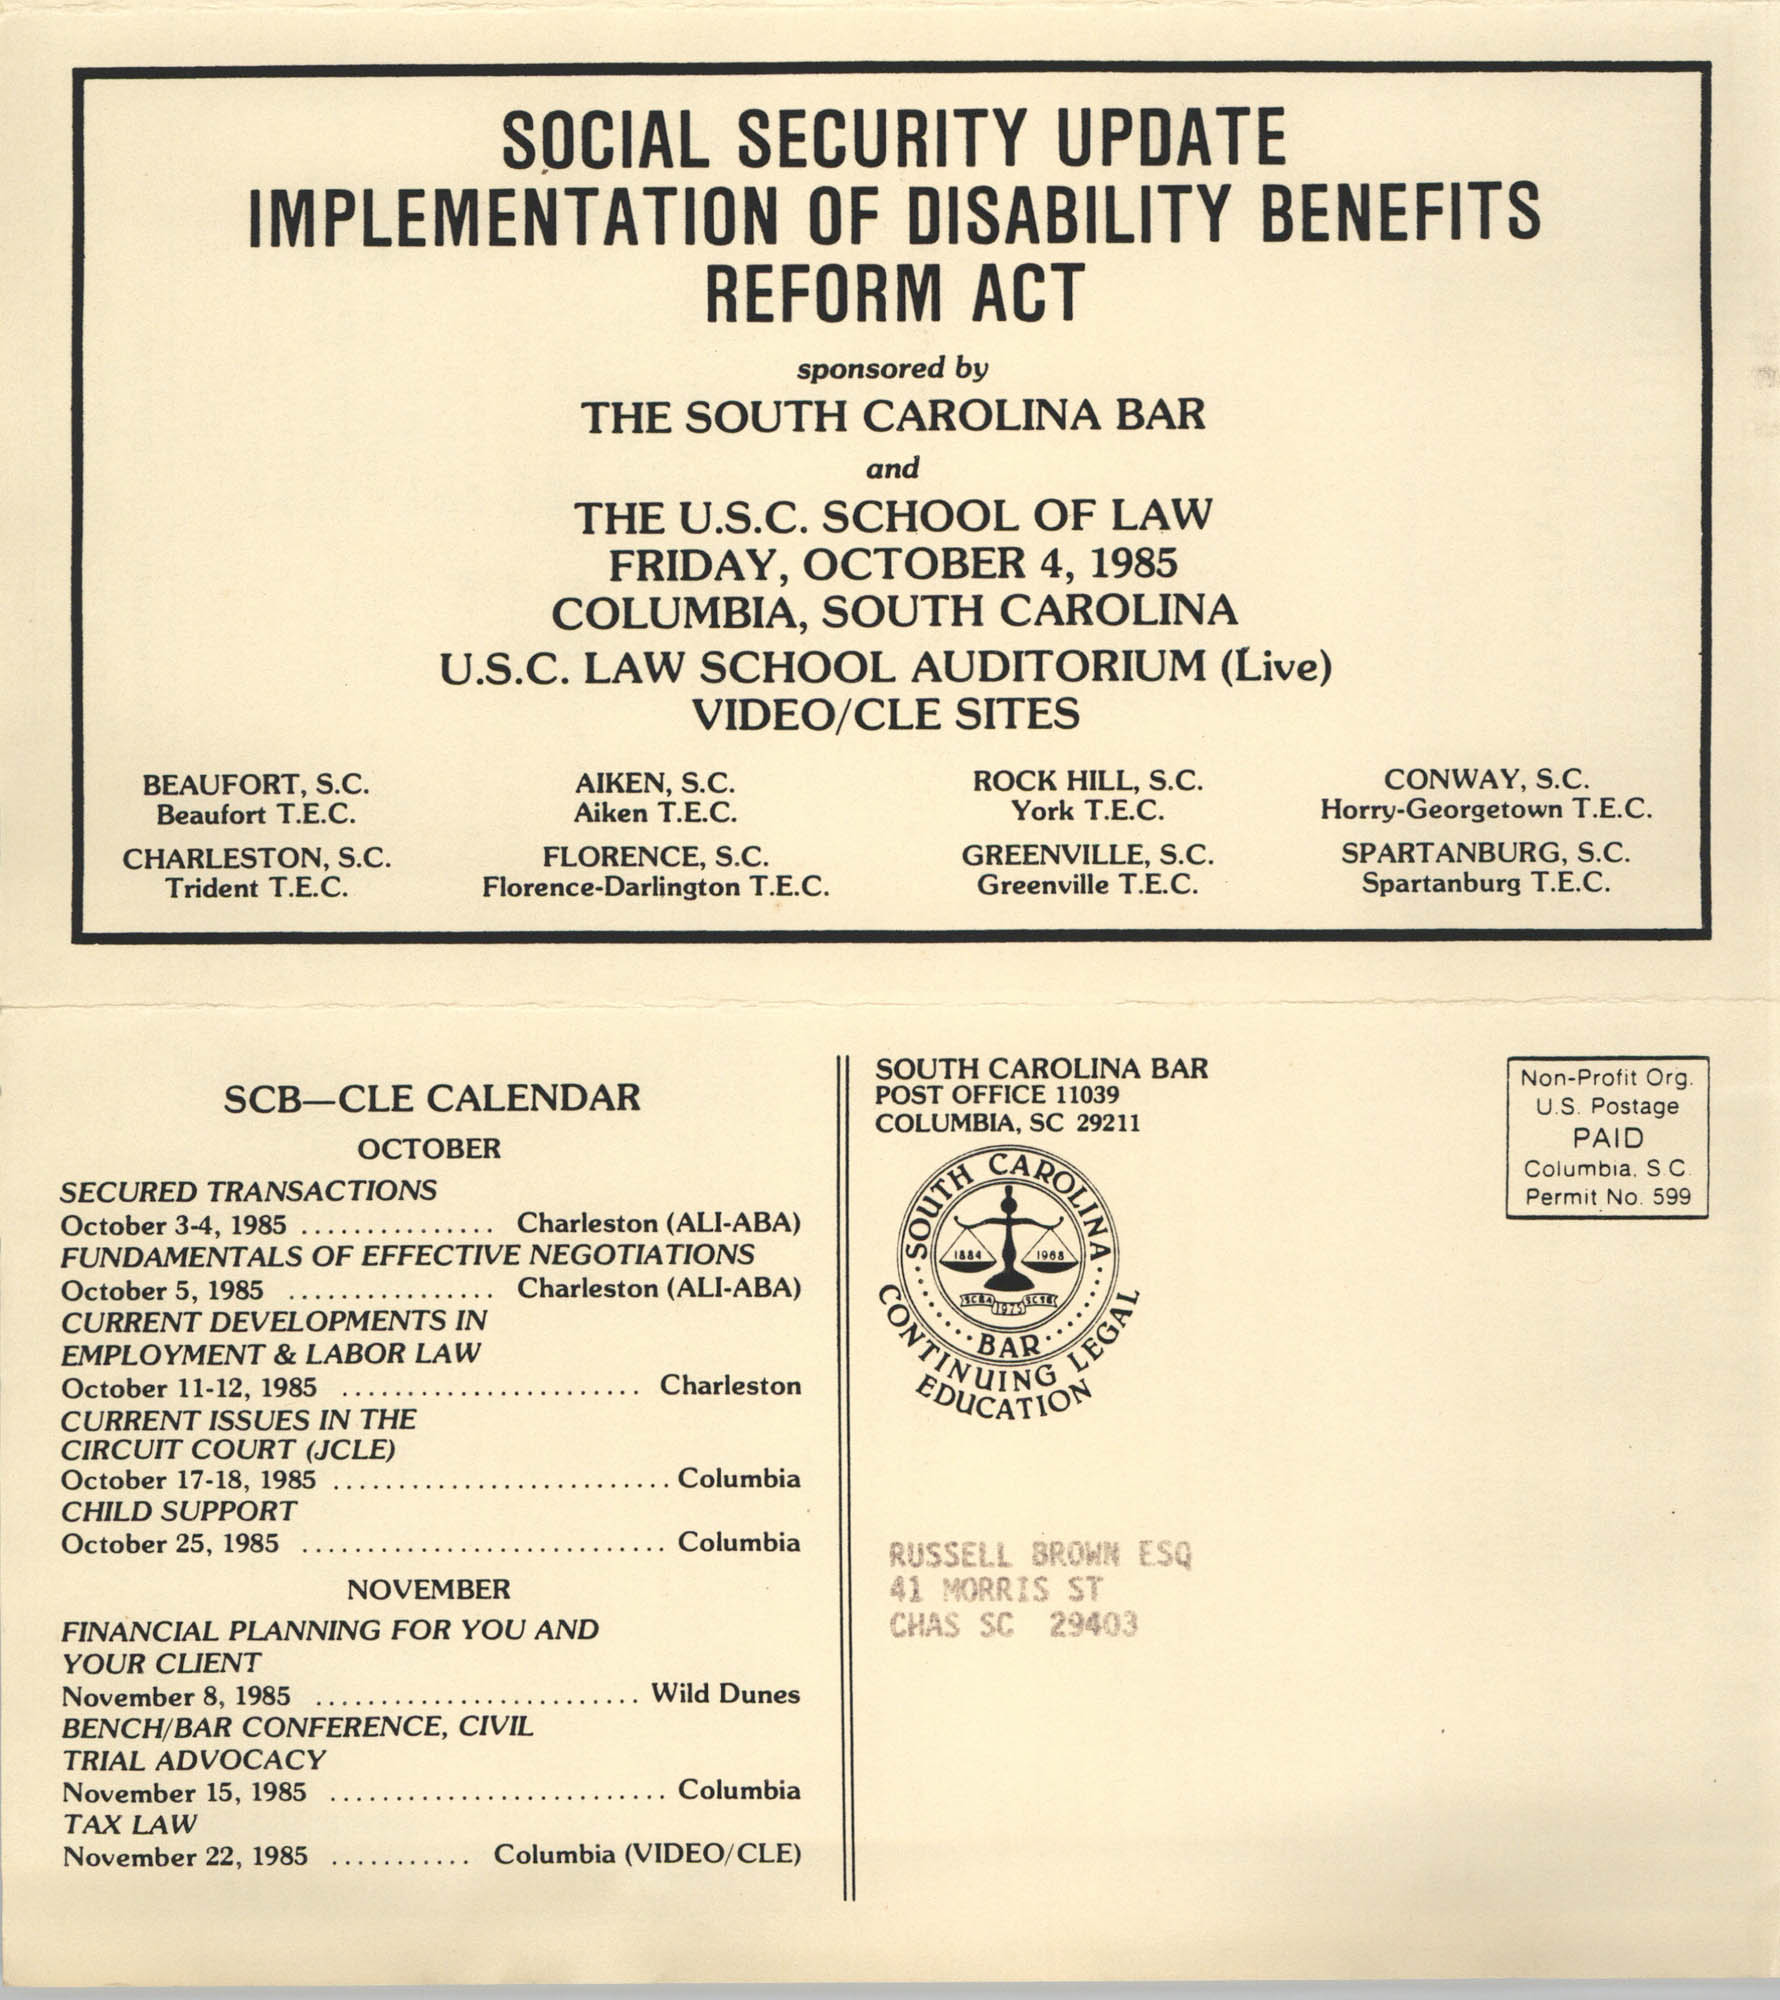 Social Security Update Implementation of Disability Benefits Reform Act, Video/CLE Seminar Pamphlet, October 4, 1985, Russell Brown